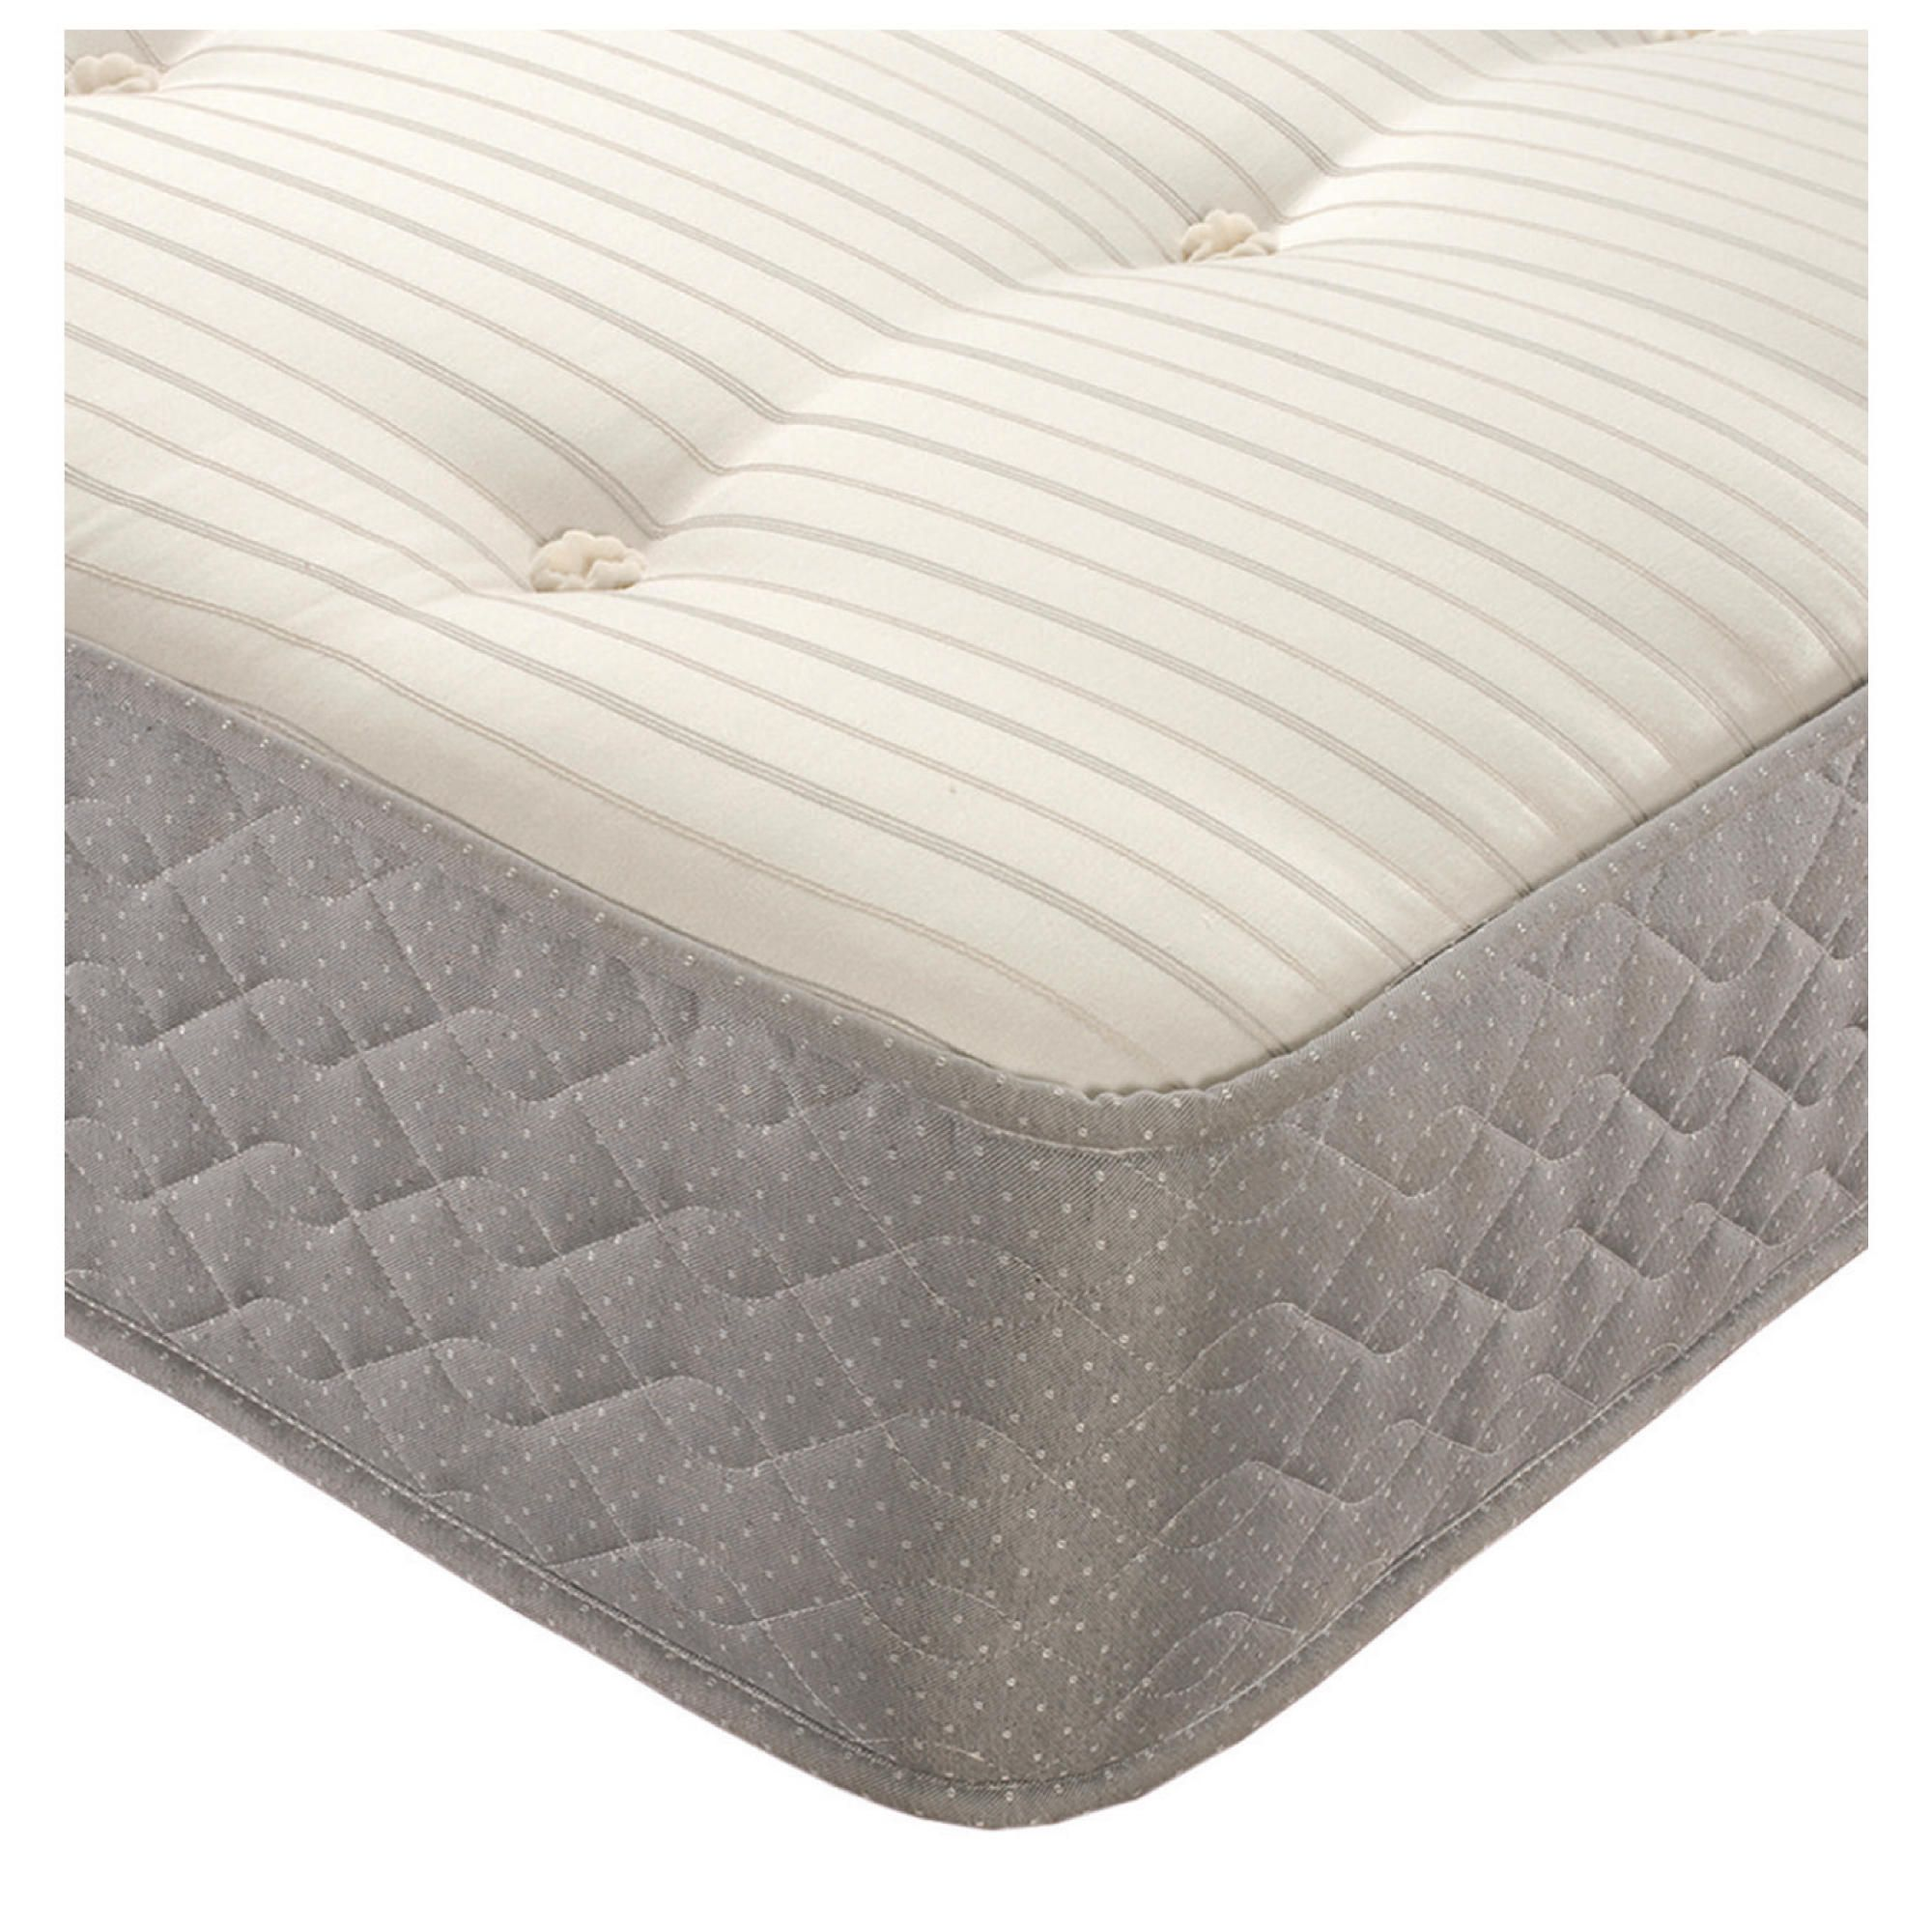 Sealy Posturepedic Ortho Backcare Plus Double Mattress at Tescos Direct